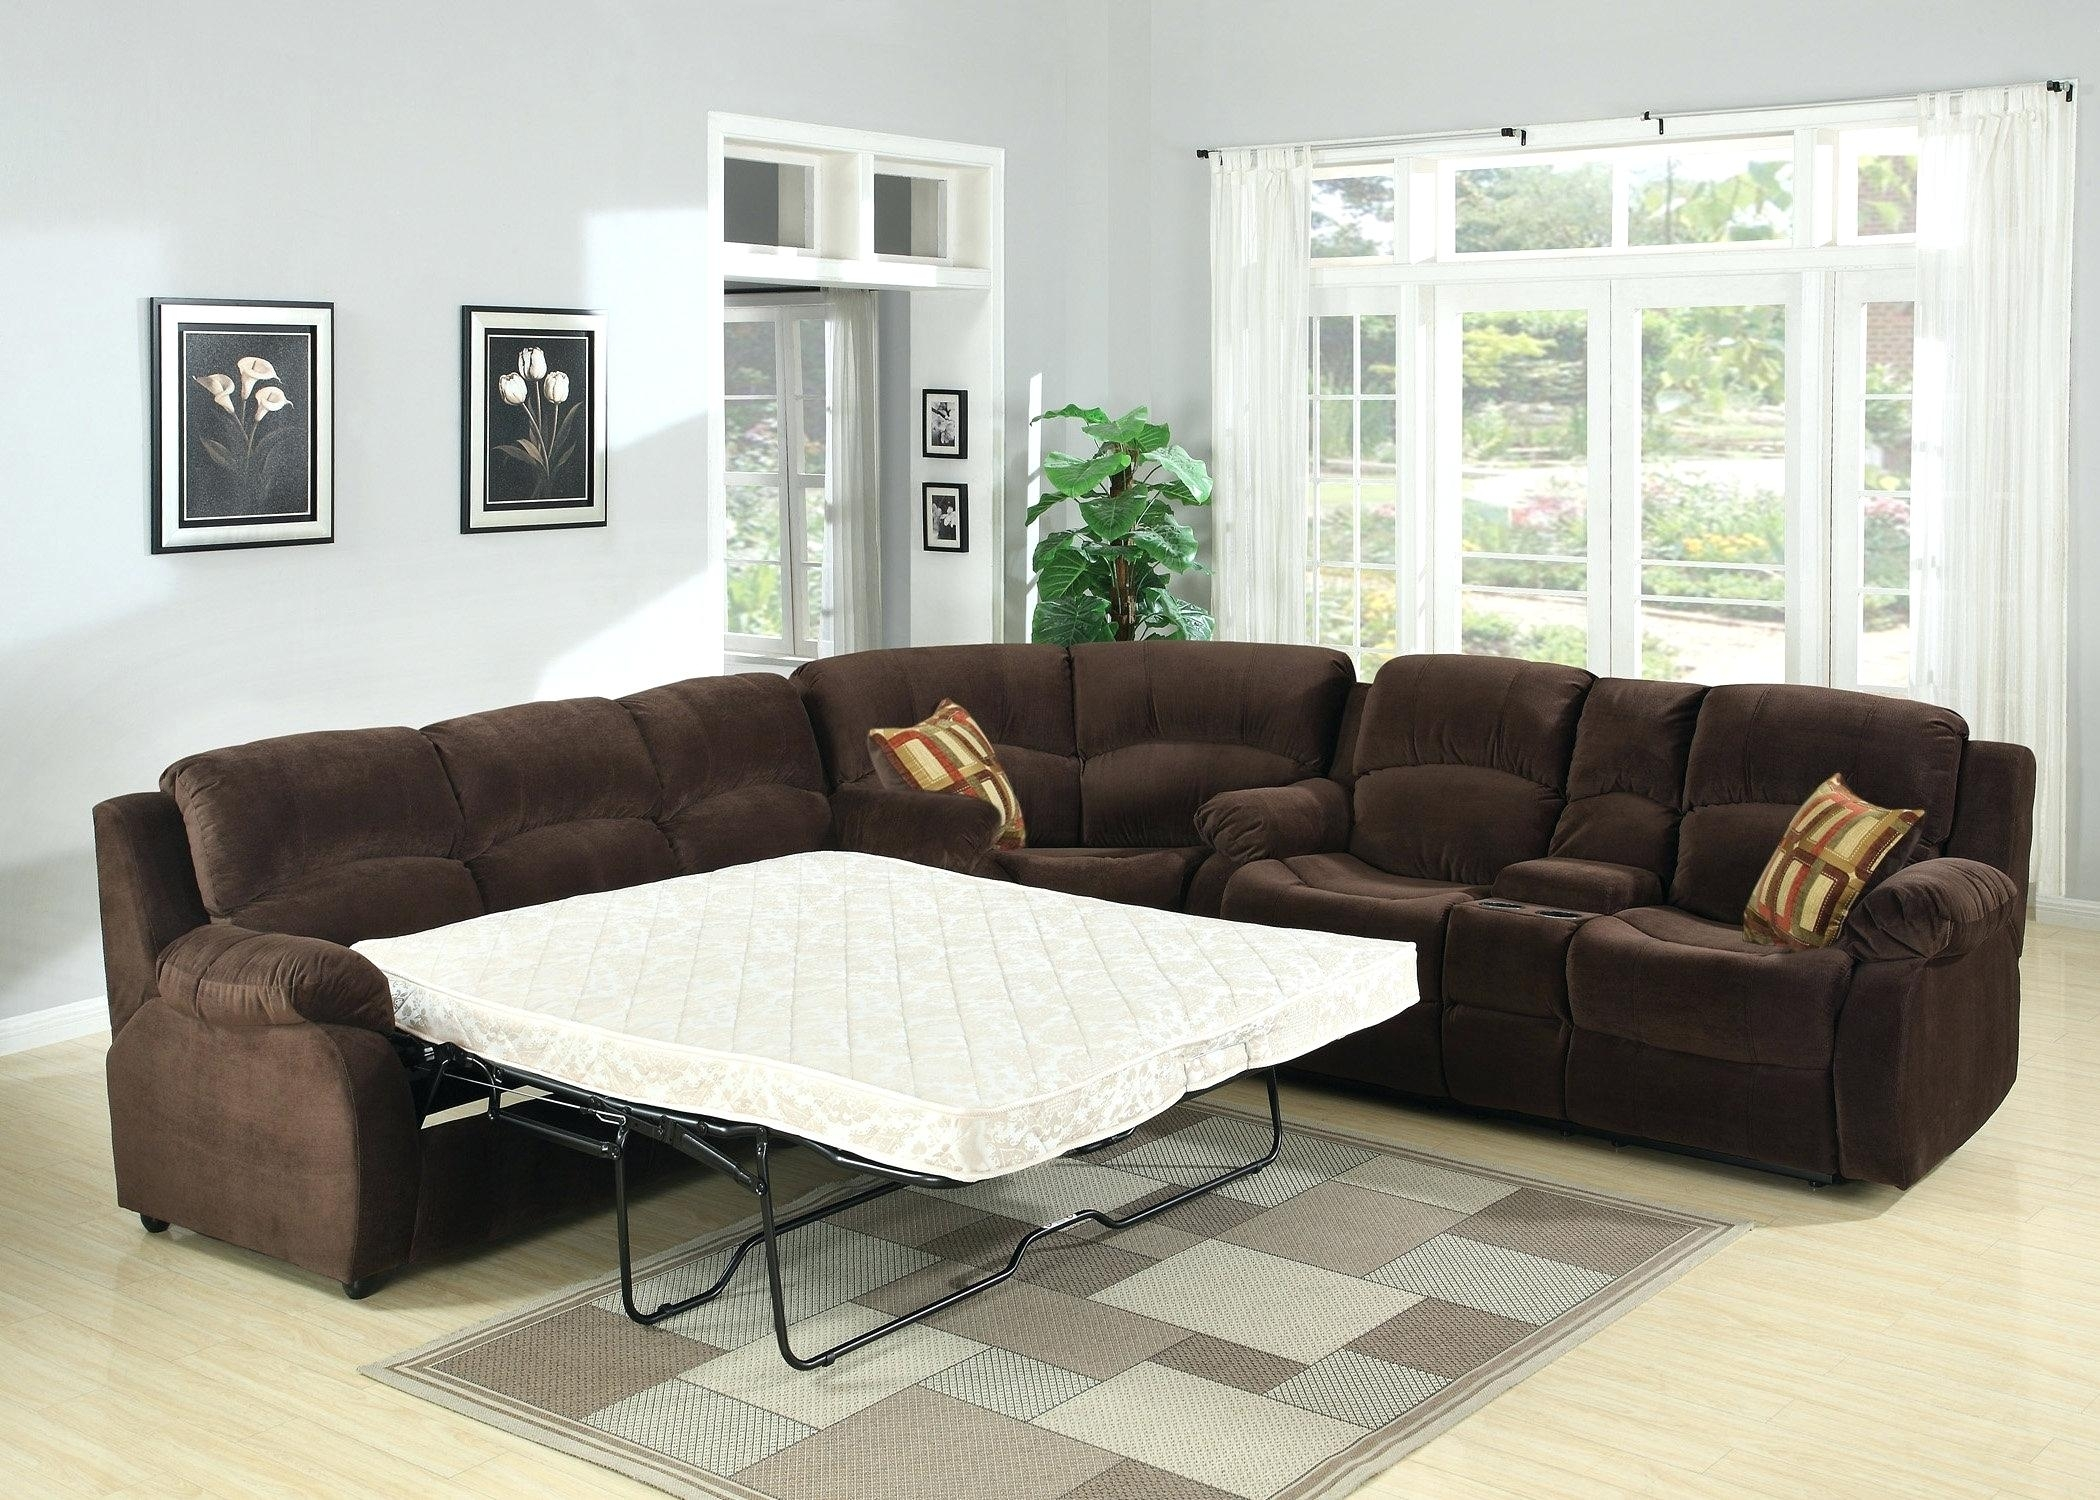 Decoration: Sofas That Turn Into Beds Sleeper Sectional Couch Sofa Inside Sectional Sofas That Turn Into Beds (View 4 of 10)